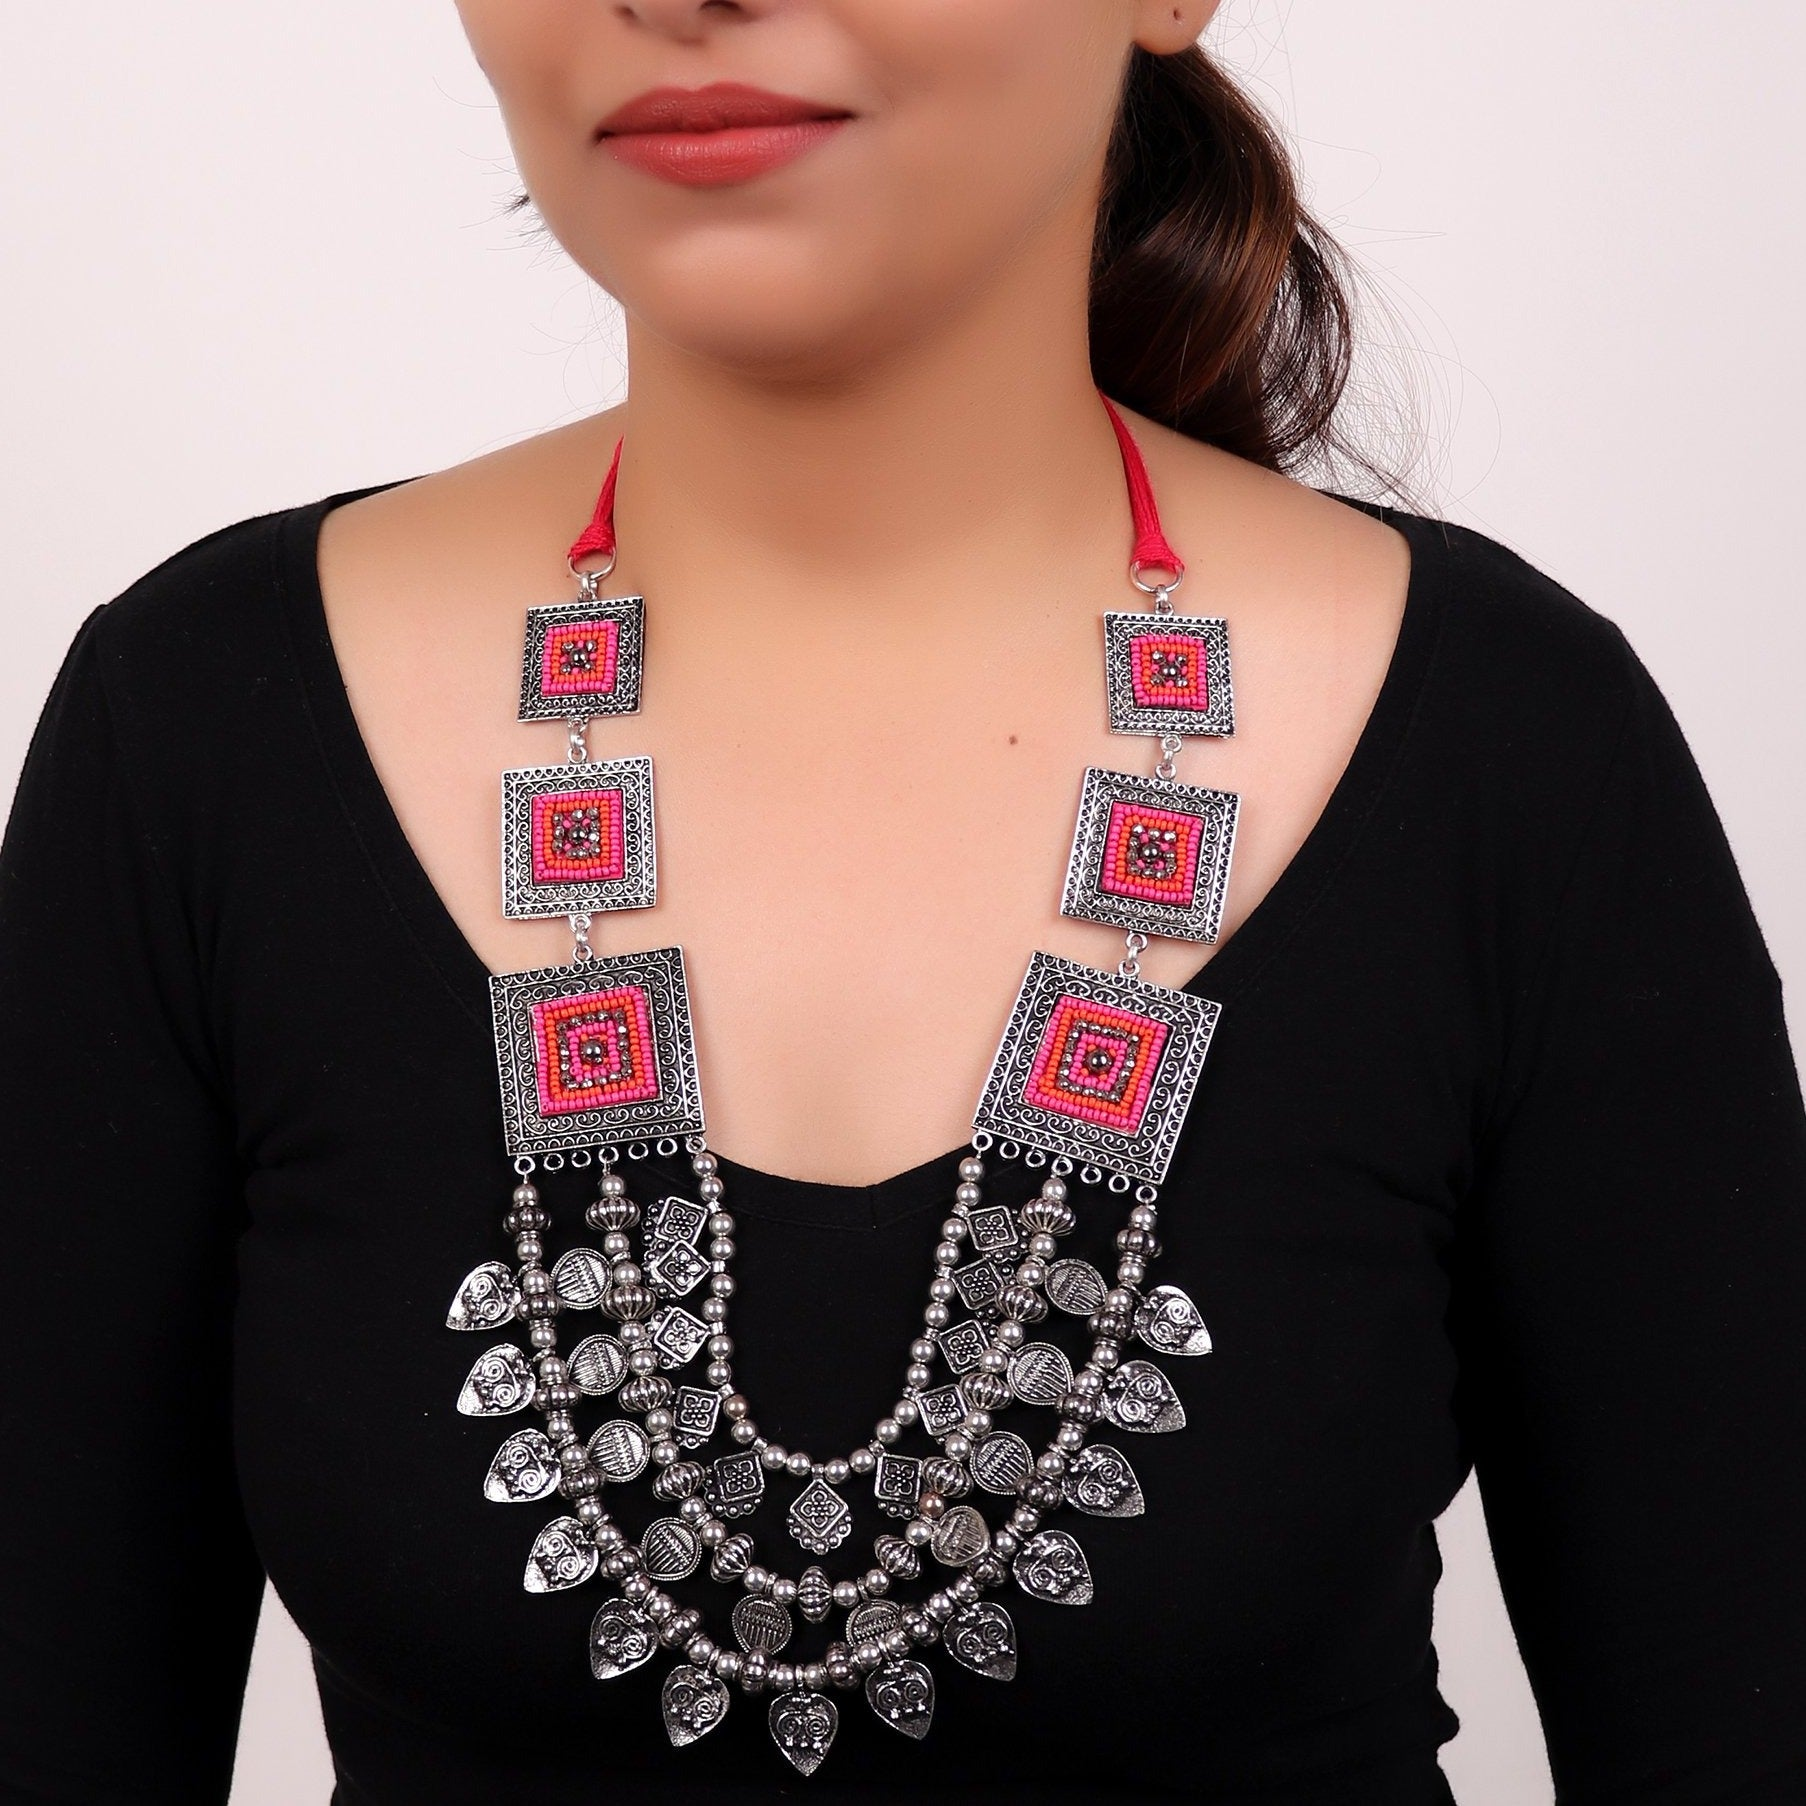 Necklace,Statement Layered Necklace with Pink Accents - Cippele Multi Store